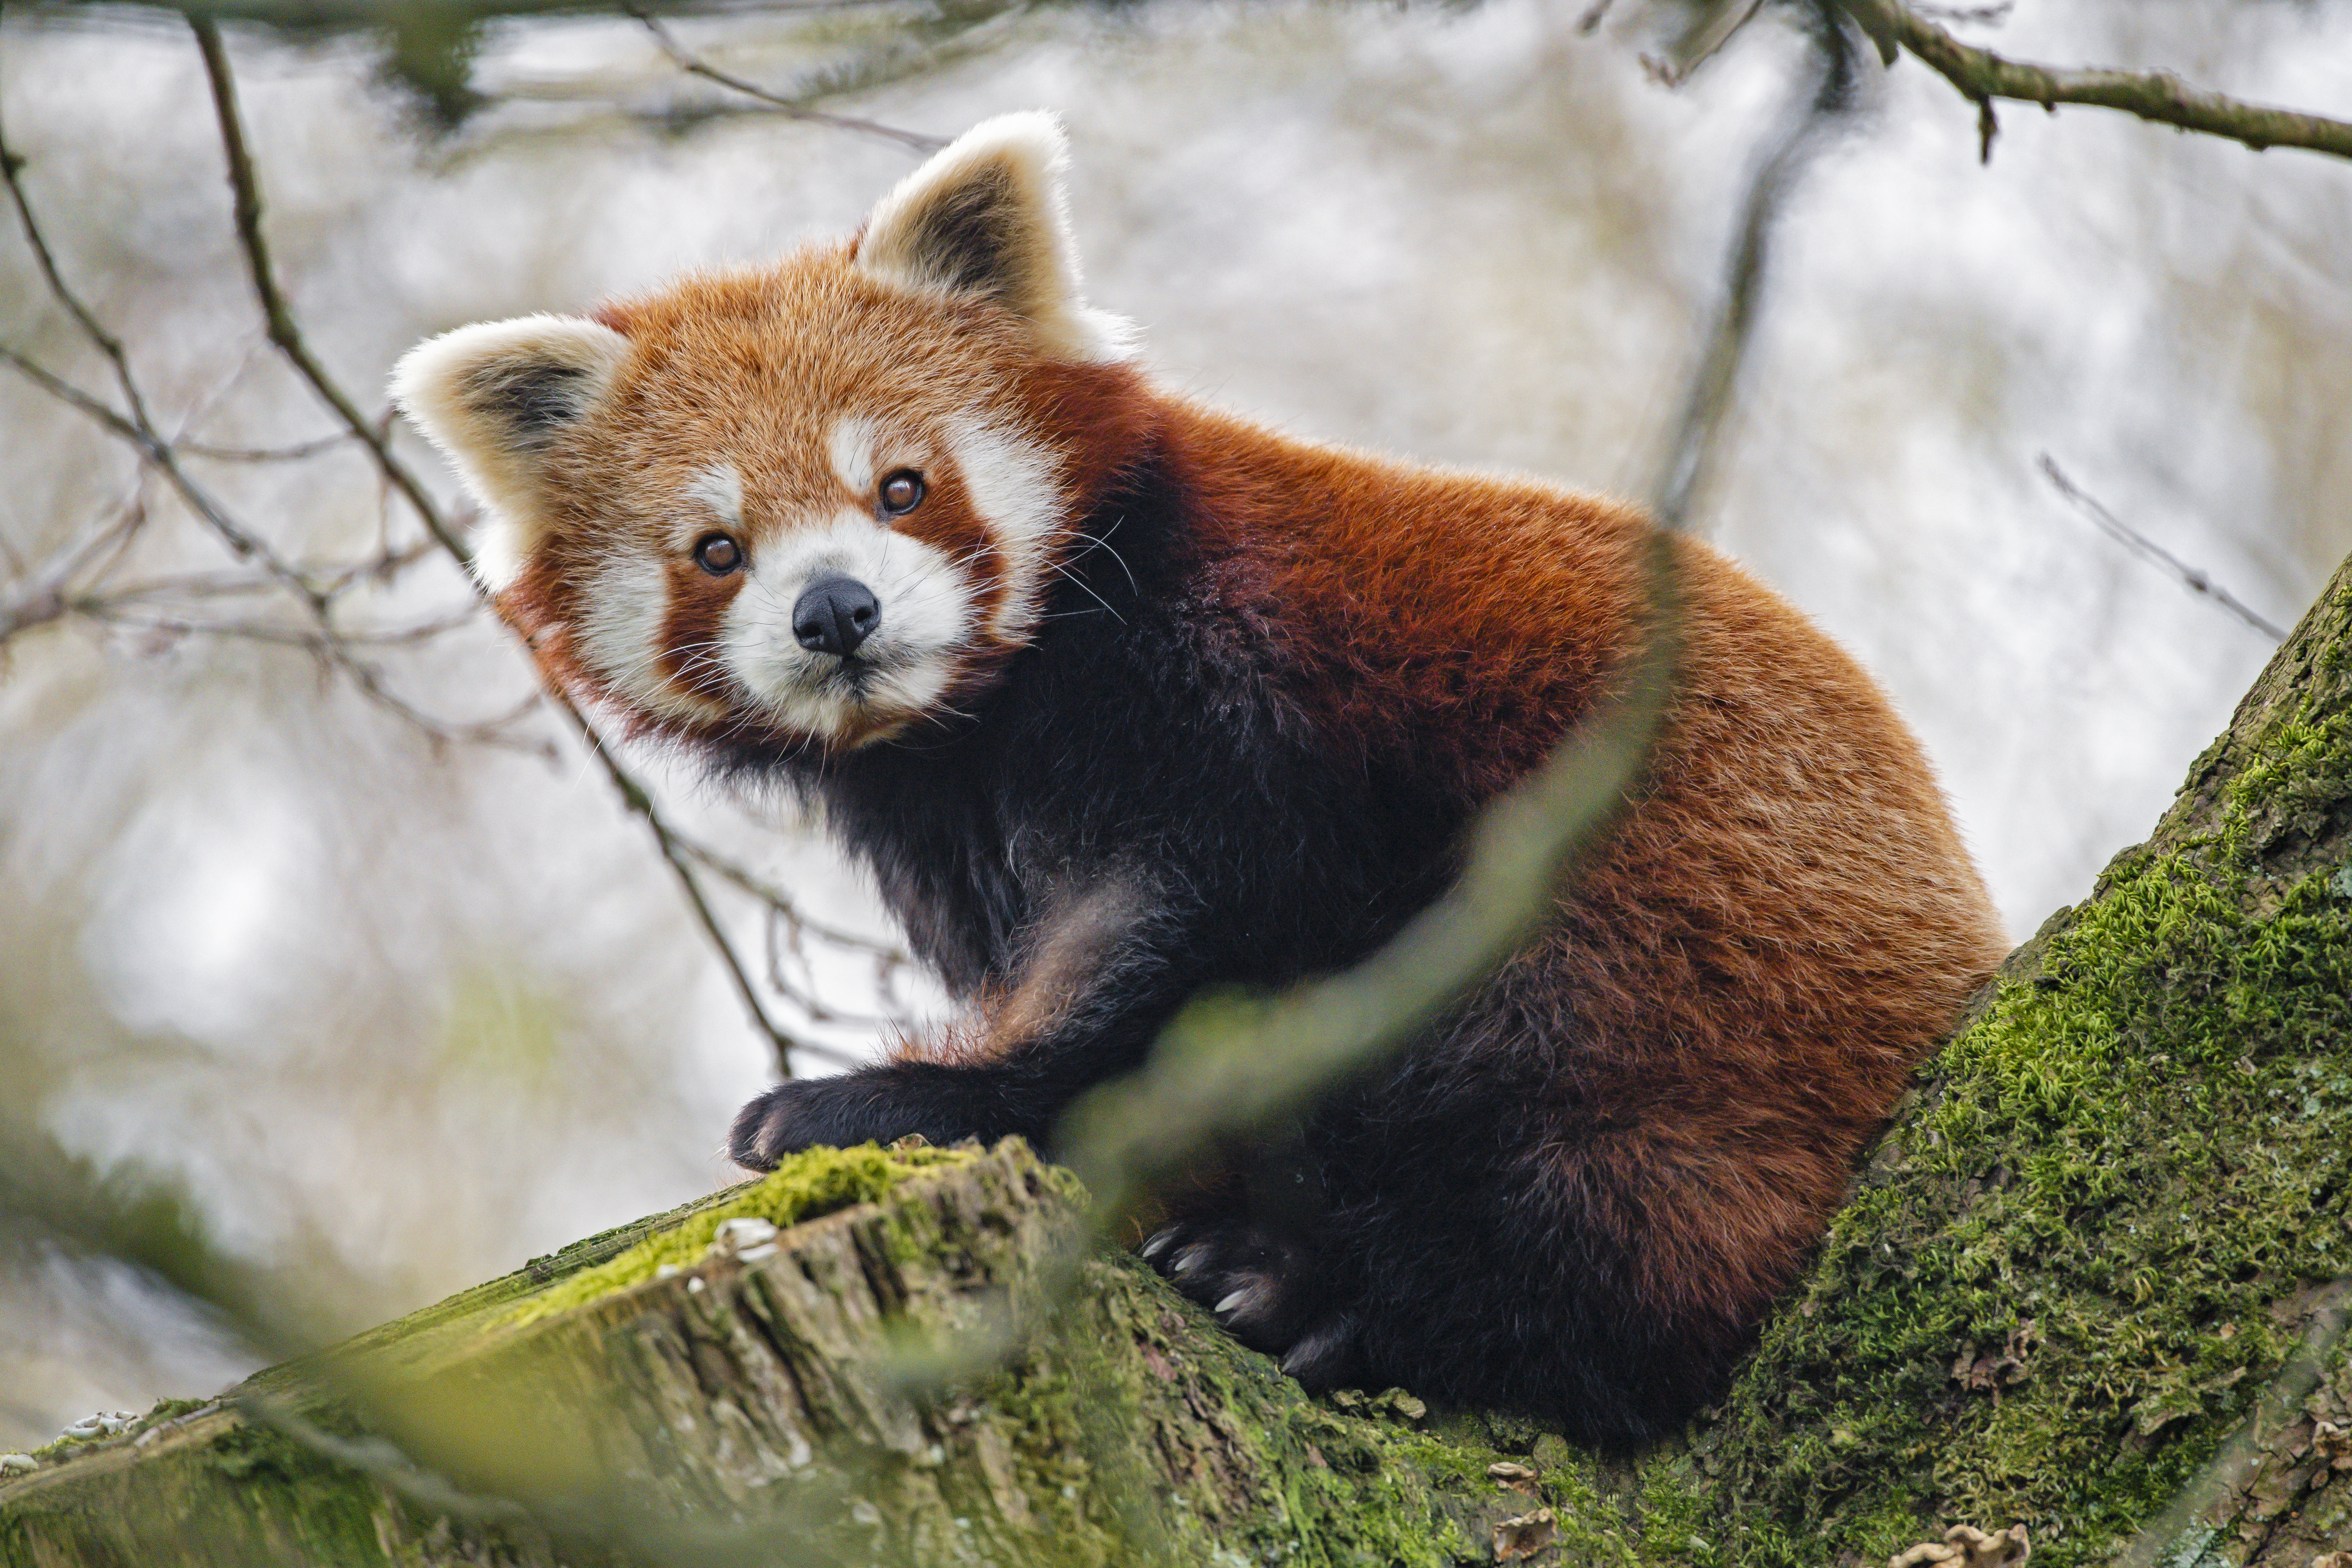 55390 download wallpaper Animals, Red Panda, Panda, Sight, Opinion, Animal screensavers and pictures for free